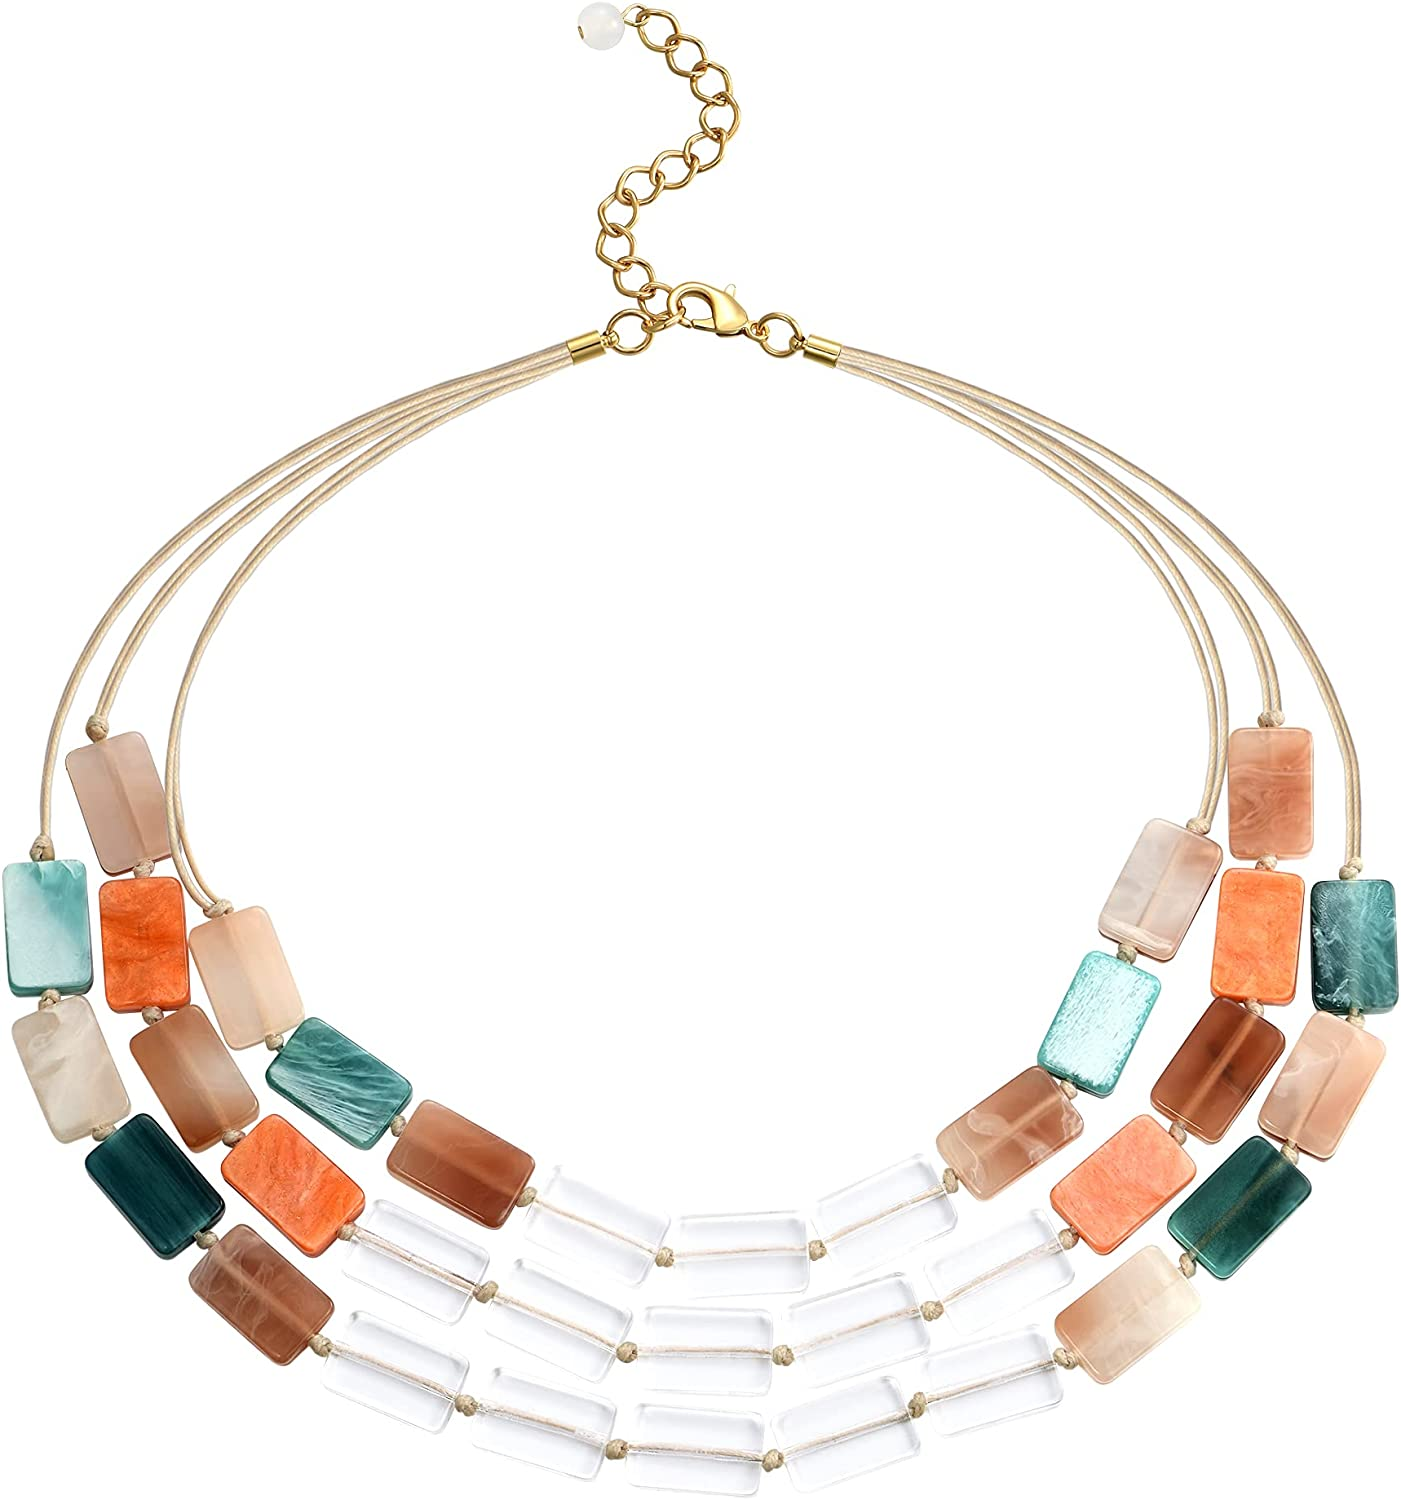 WOWORAMA Statement Necklaces for Women Colorful Multi-layer Chunky Bib Necklace Acrylic Collar Necklace